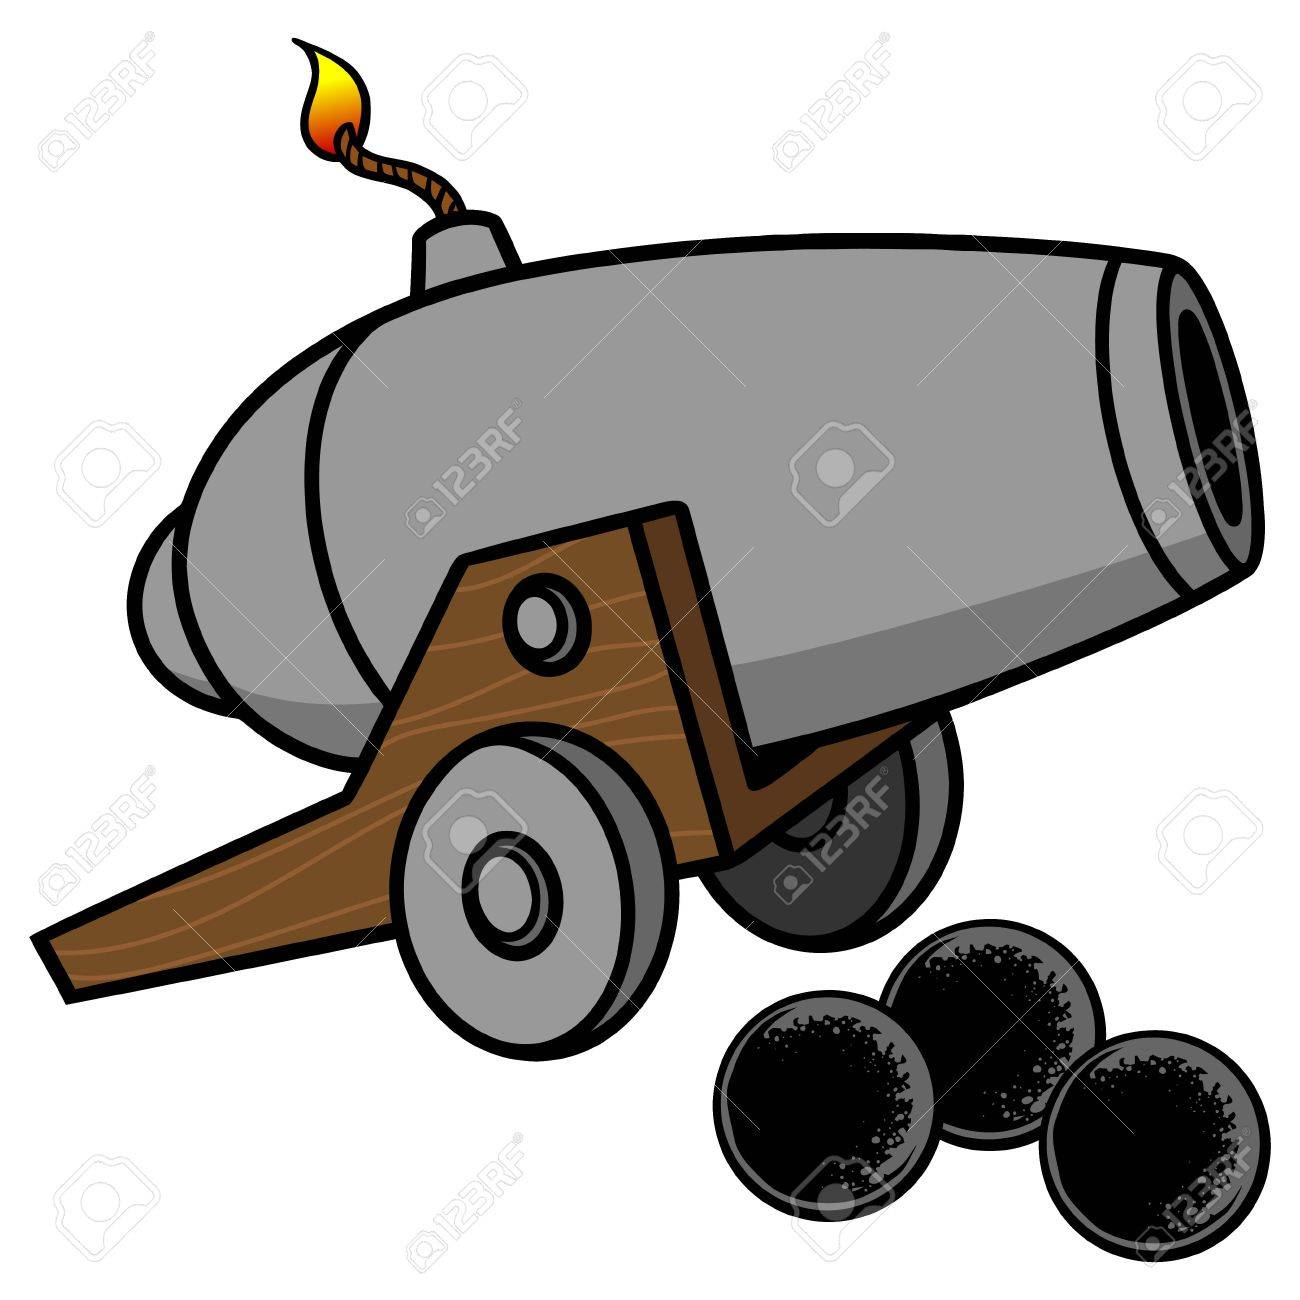 cannon royalty free cliparts vectors and stock illustration image rh 123rf com cannonball clipart clipart pirate cannon